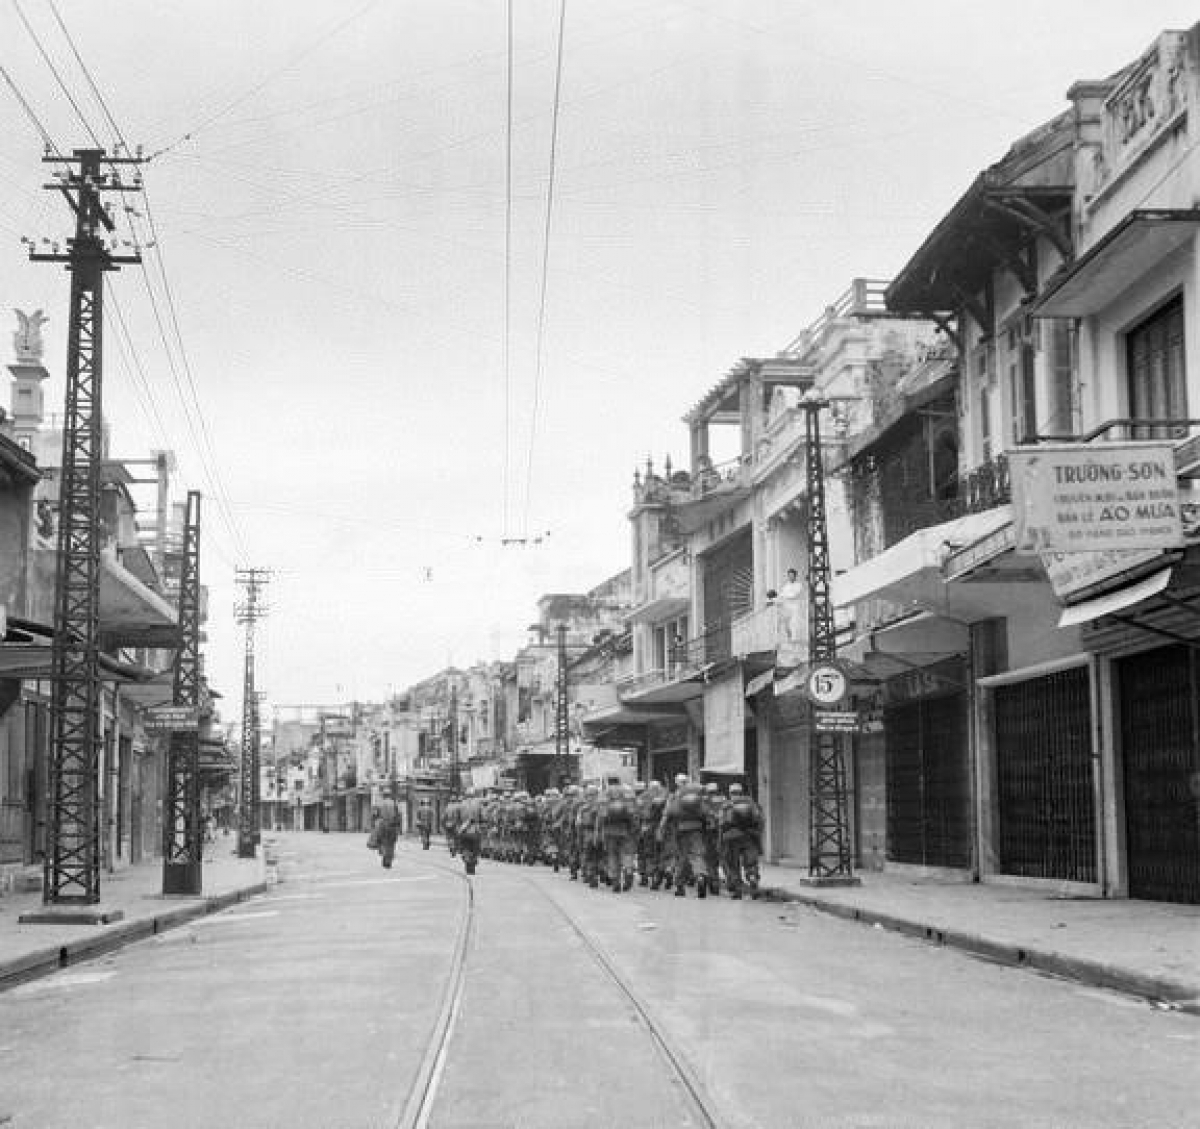 valuable photos of hanoi liberation day in 1954